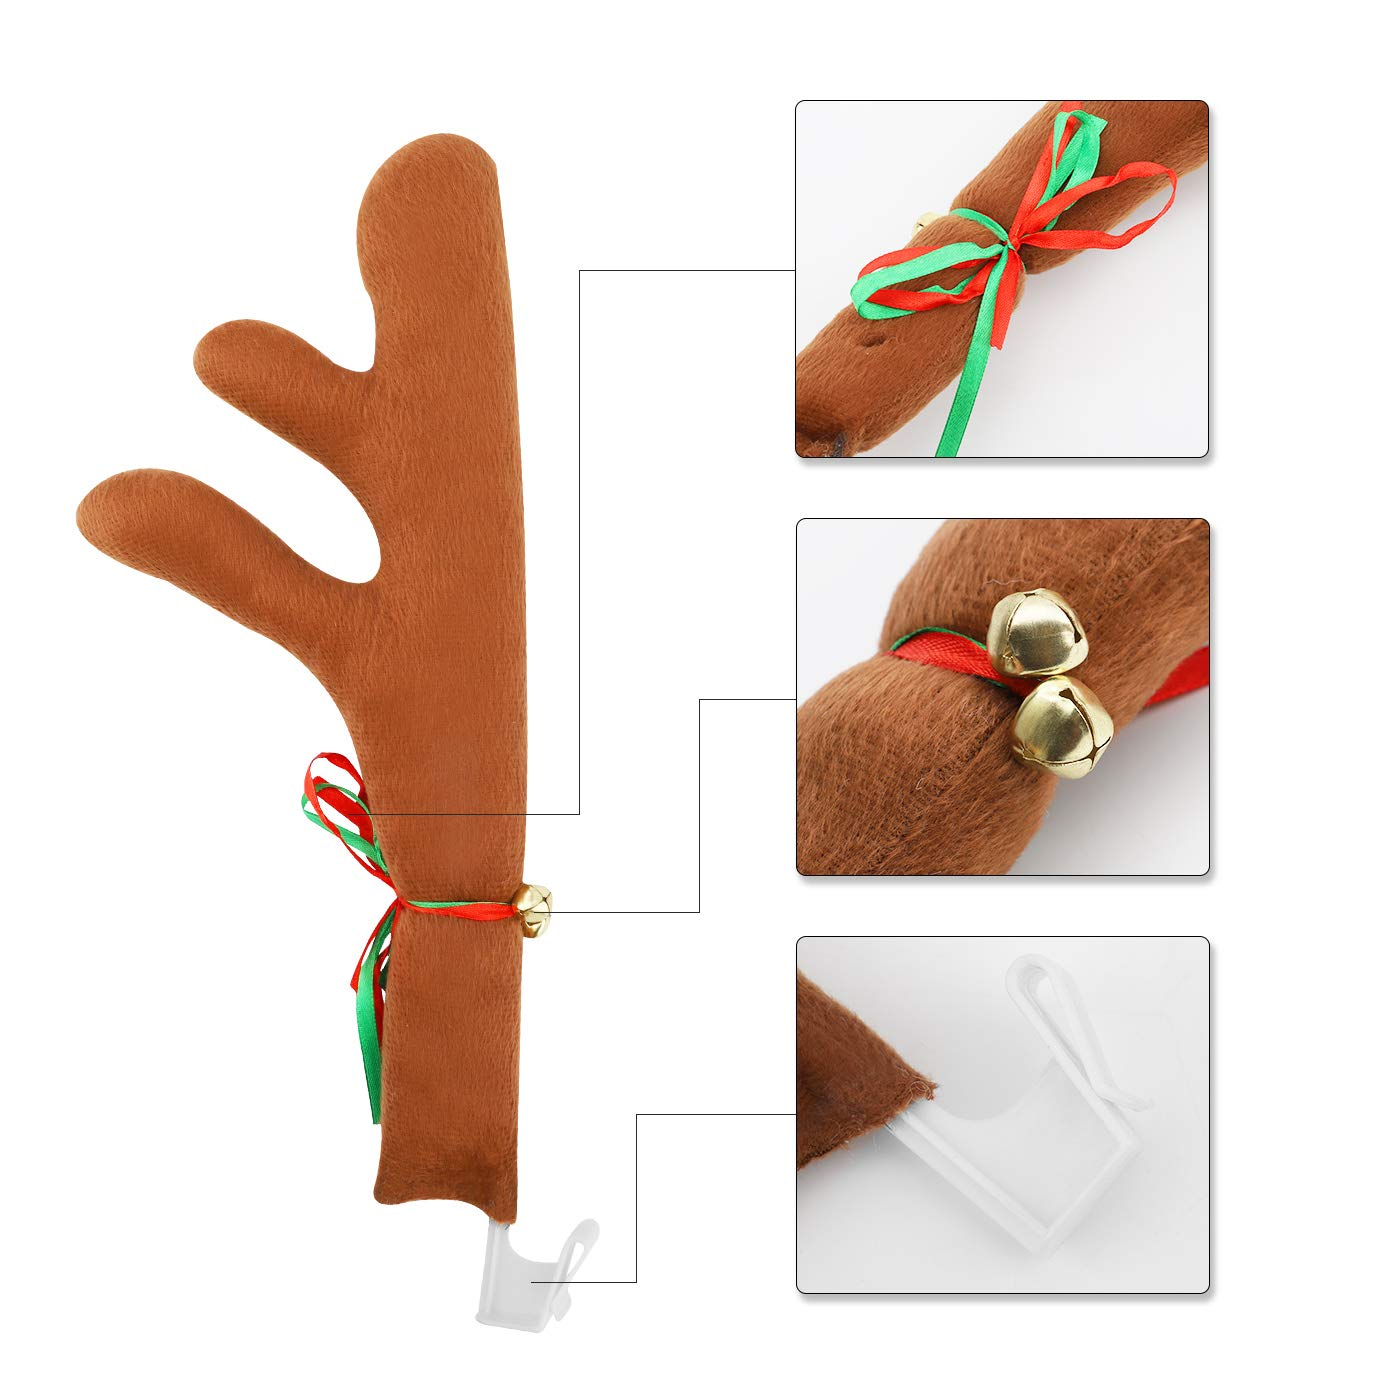 WAPIKE Reindeer Antler /& Nose Car Decoration Kit Christmas Reindeer Antler Car Costume Auto Accessories for Car Windows and Front Grille